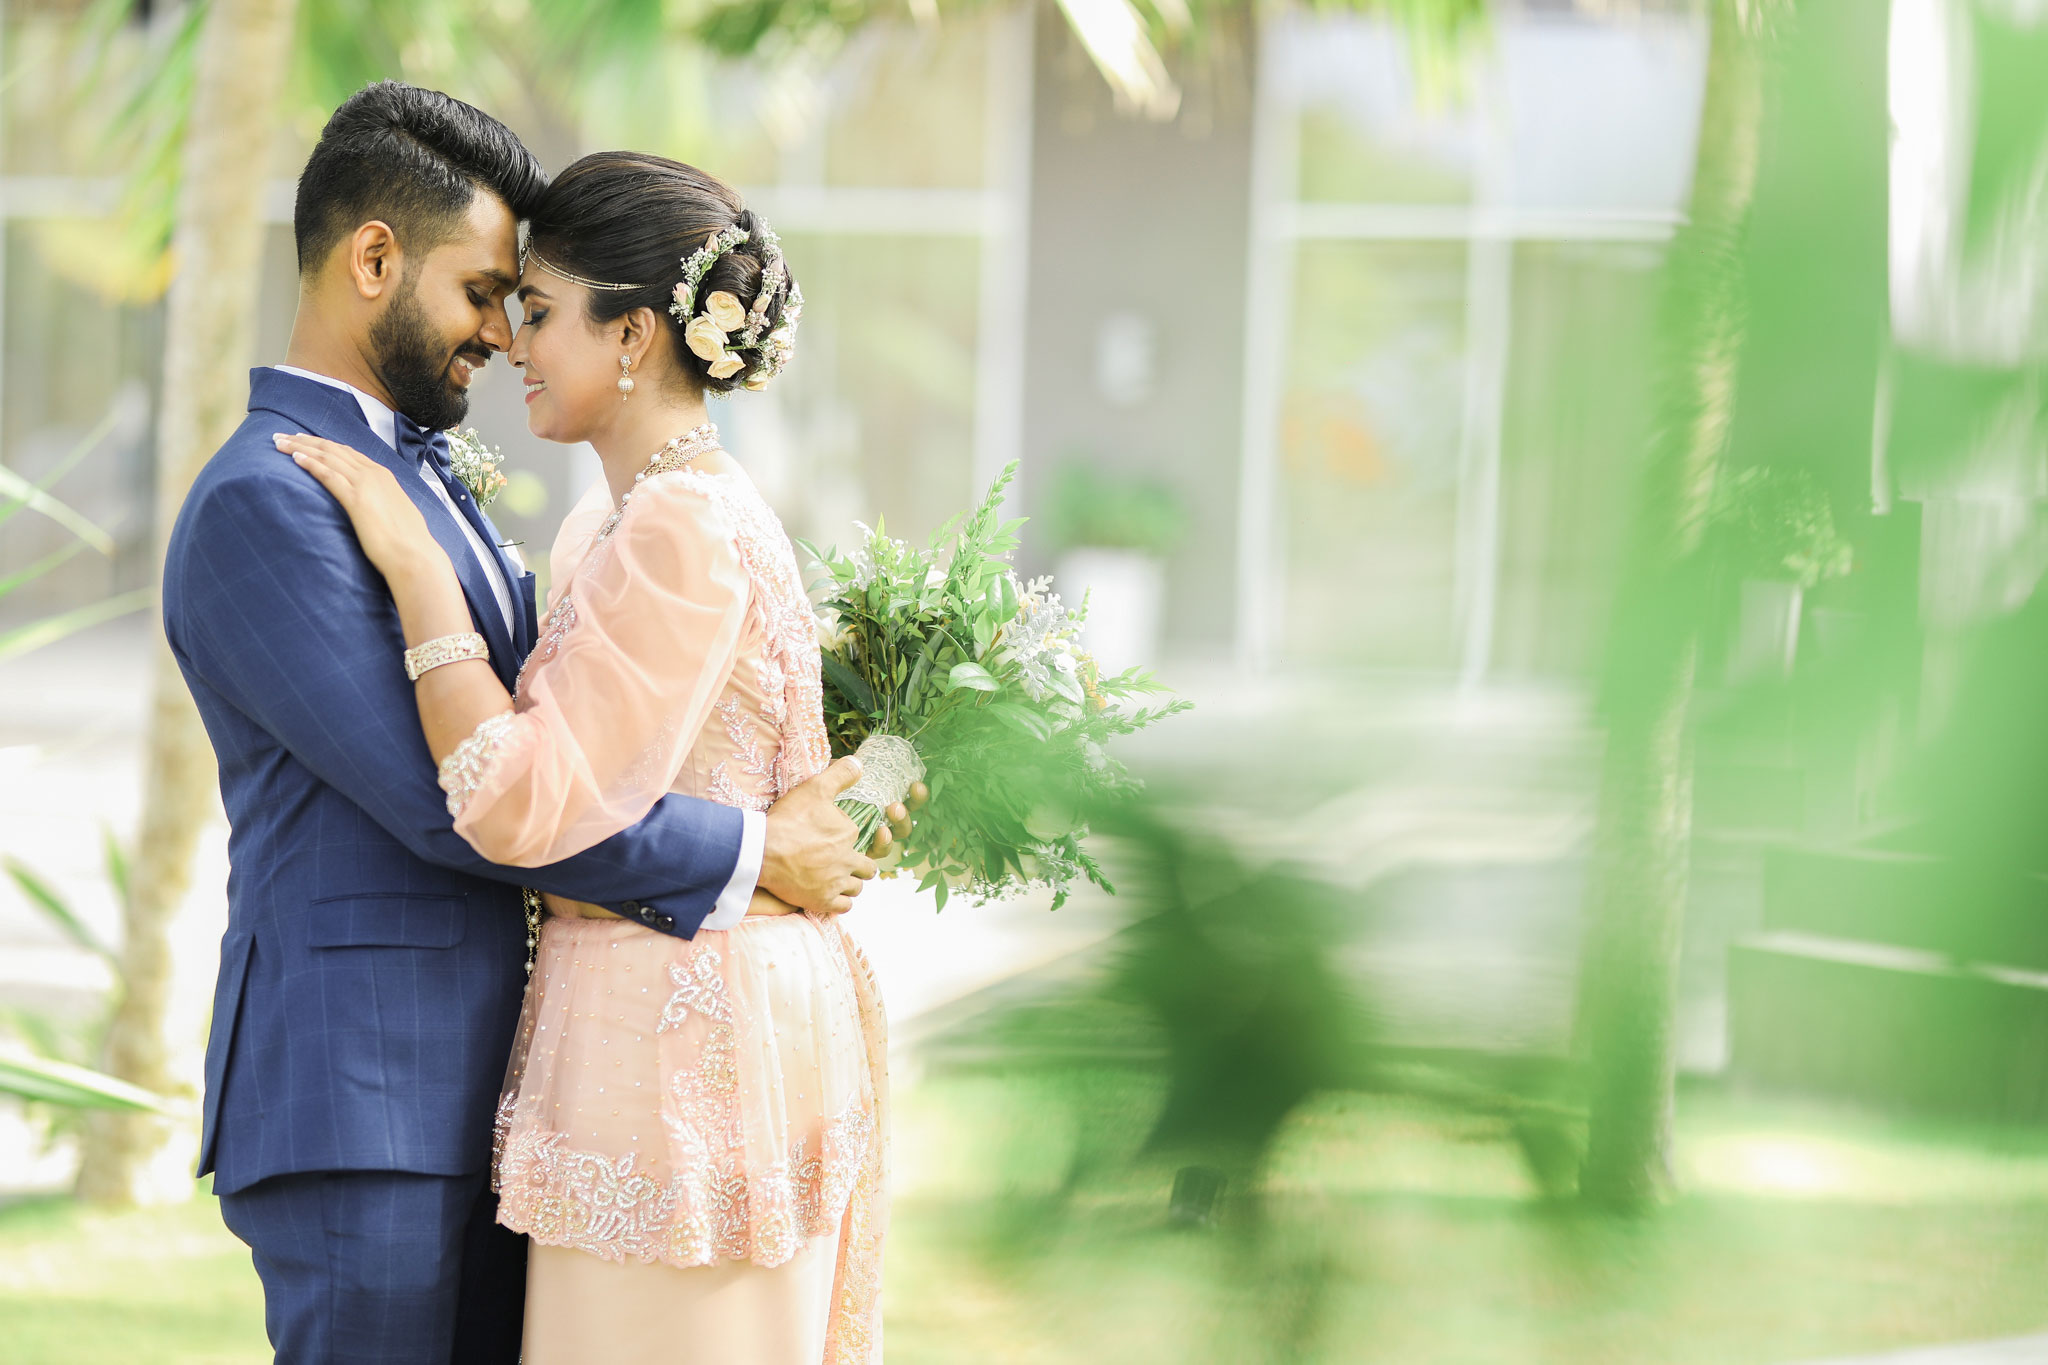 Madushani & Dasun - Prabath Kanishka Wedding Photography